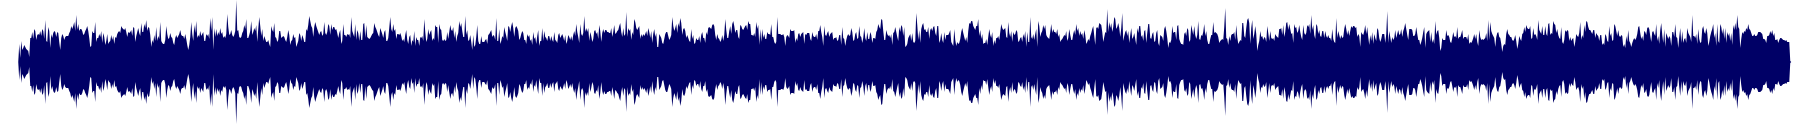 waveform of track #67256